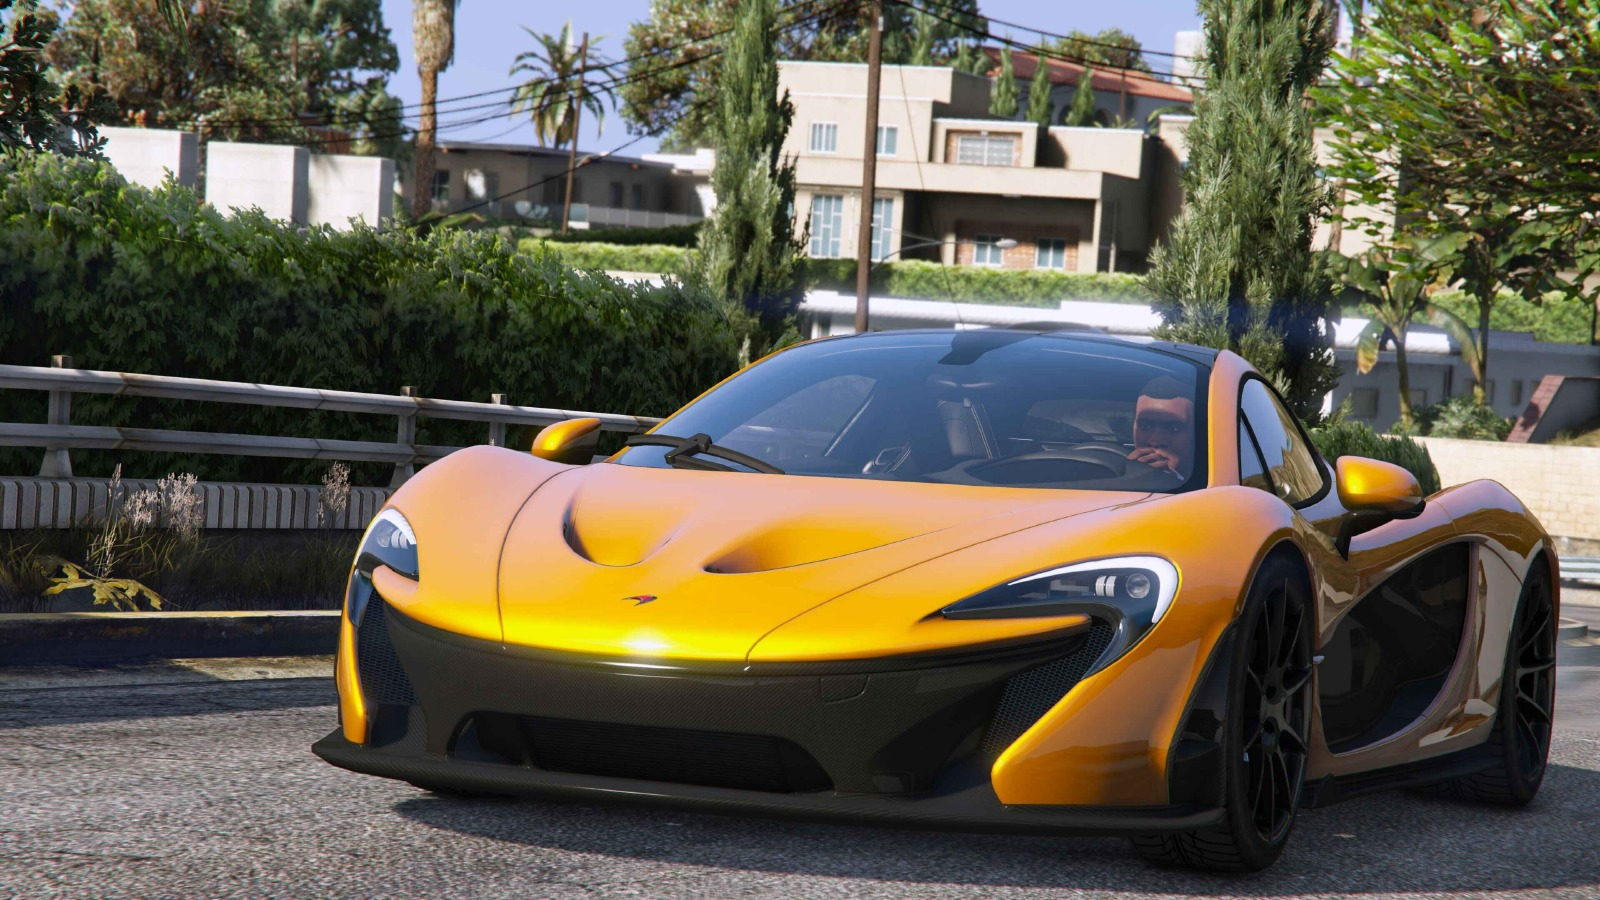 mclaren p1 2014 vehicules pour gta v sur gta modding. Black Bedroom Furniture Sets. Home Design Ideas